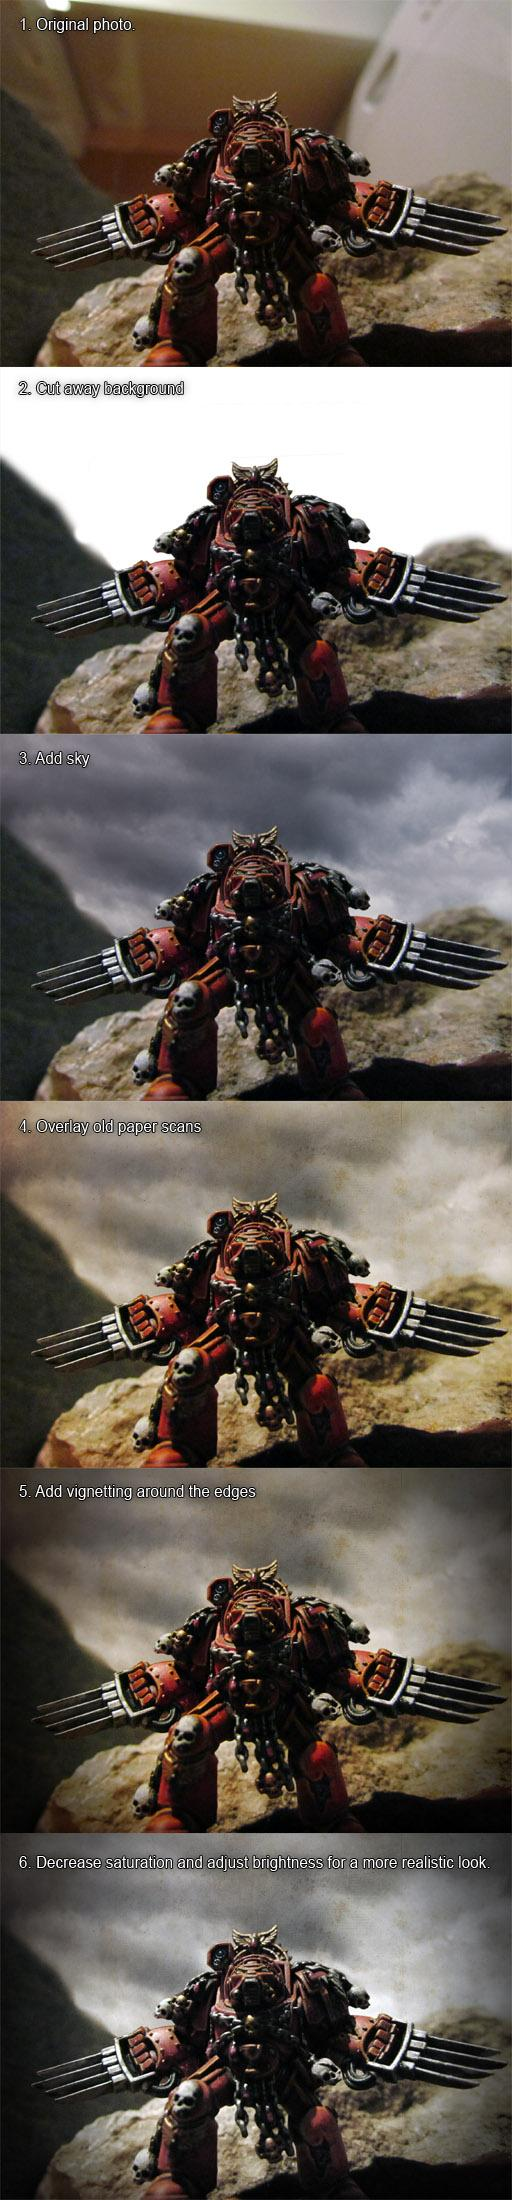 Space Hulk terminator - background swap and touchup - WIP sequence